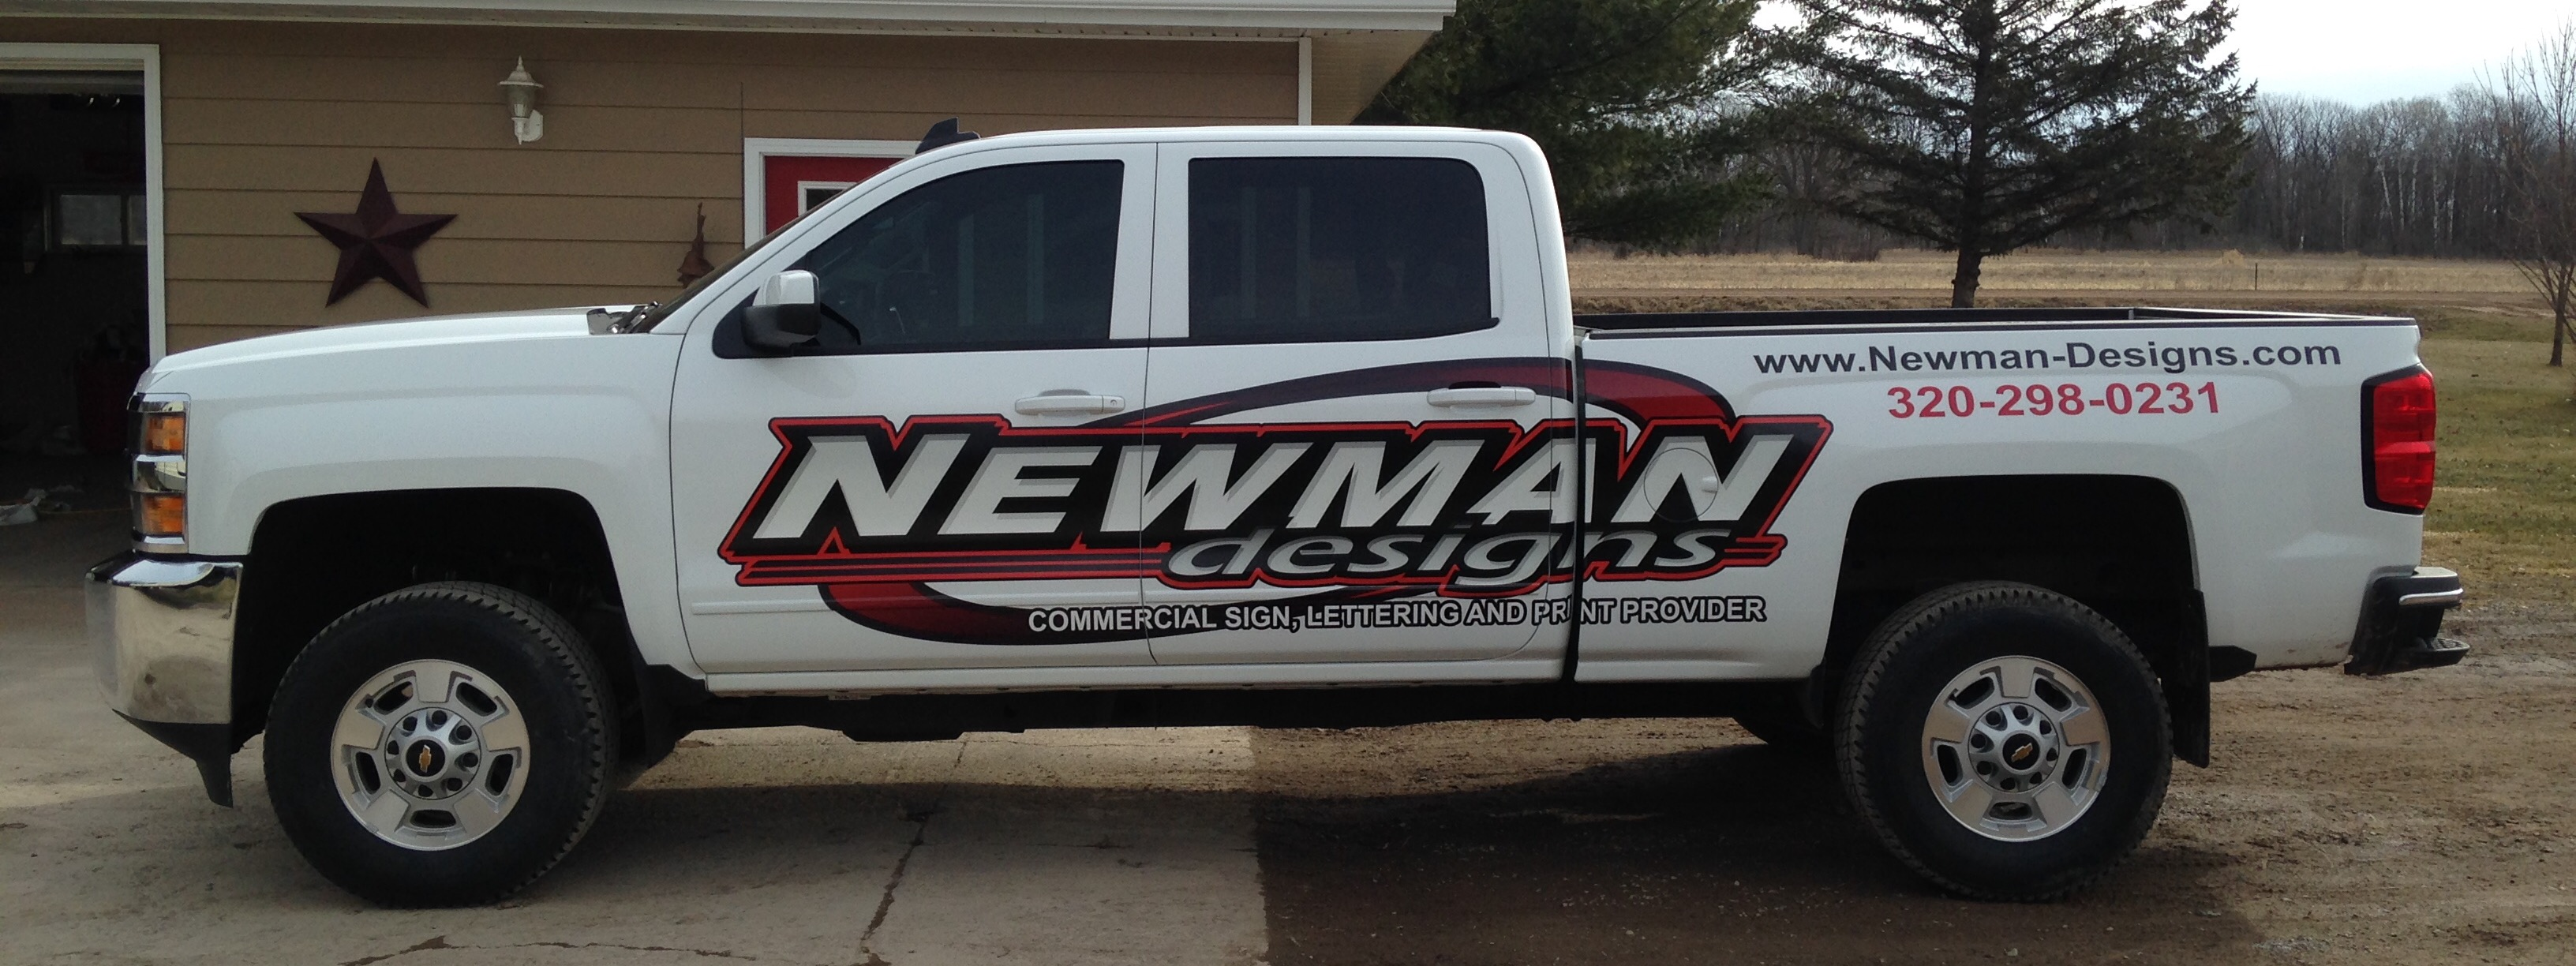 Newman designs pine city mn 55063 for Big truck lettering